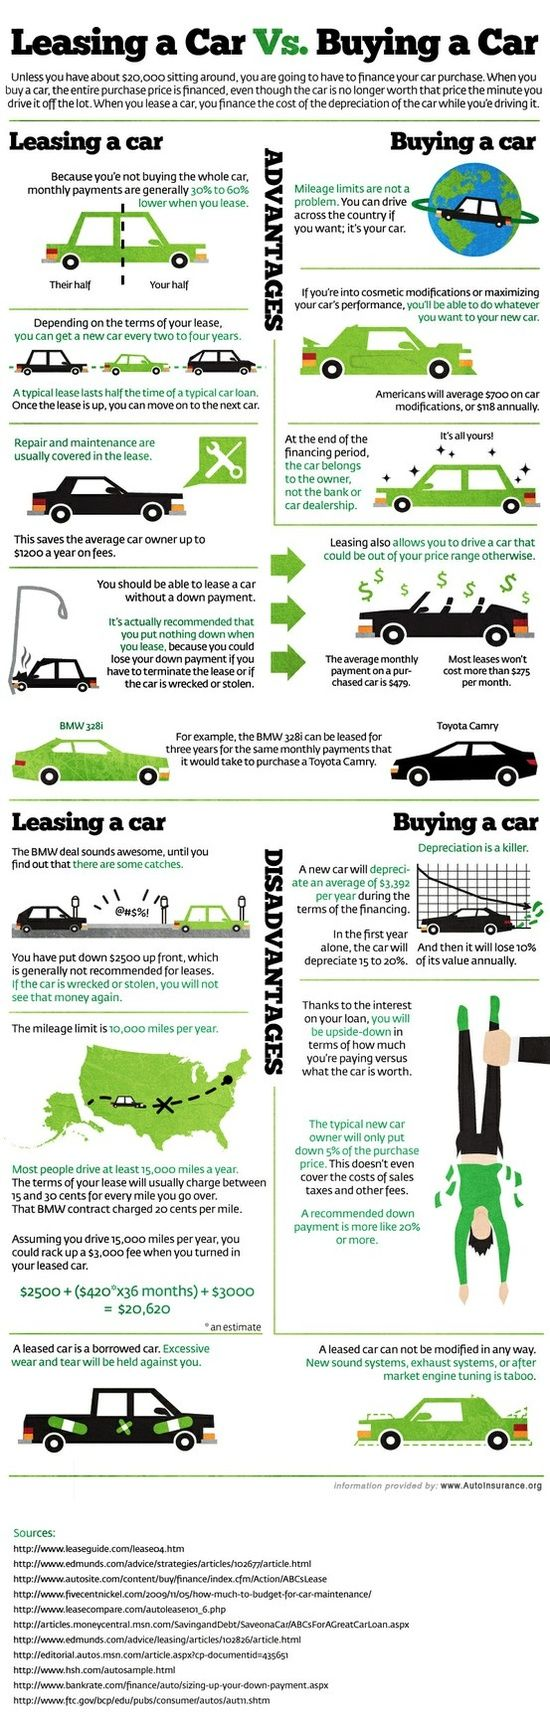 24 best images about best car tips and infographics on pinterest cold weather plastic grocery. Black Bedroom Furniture Sets. Home Design Ideas